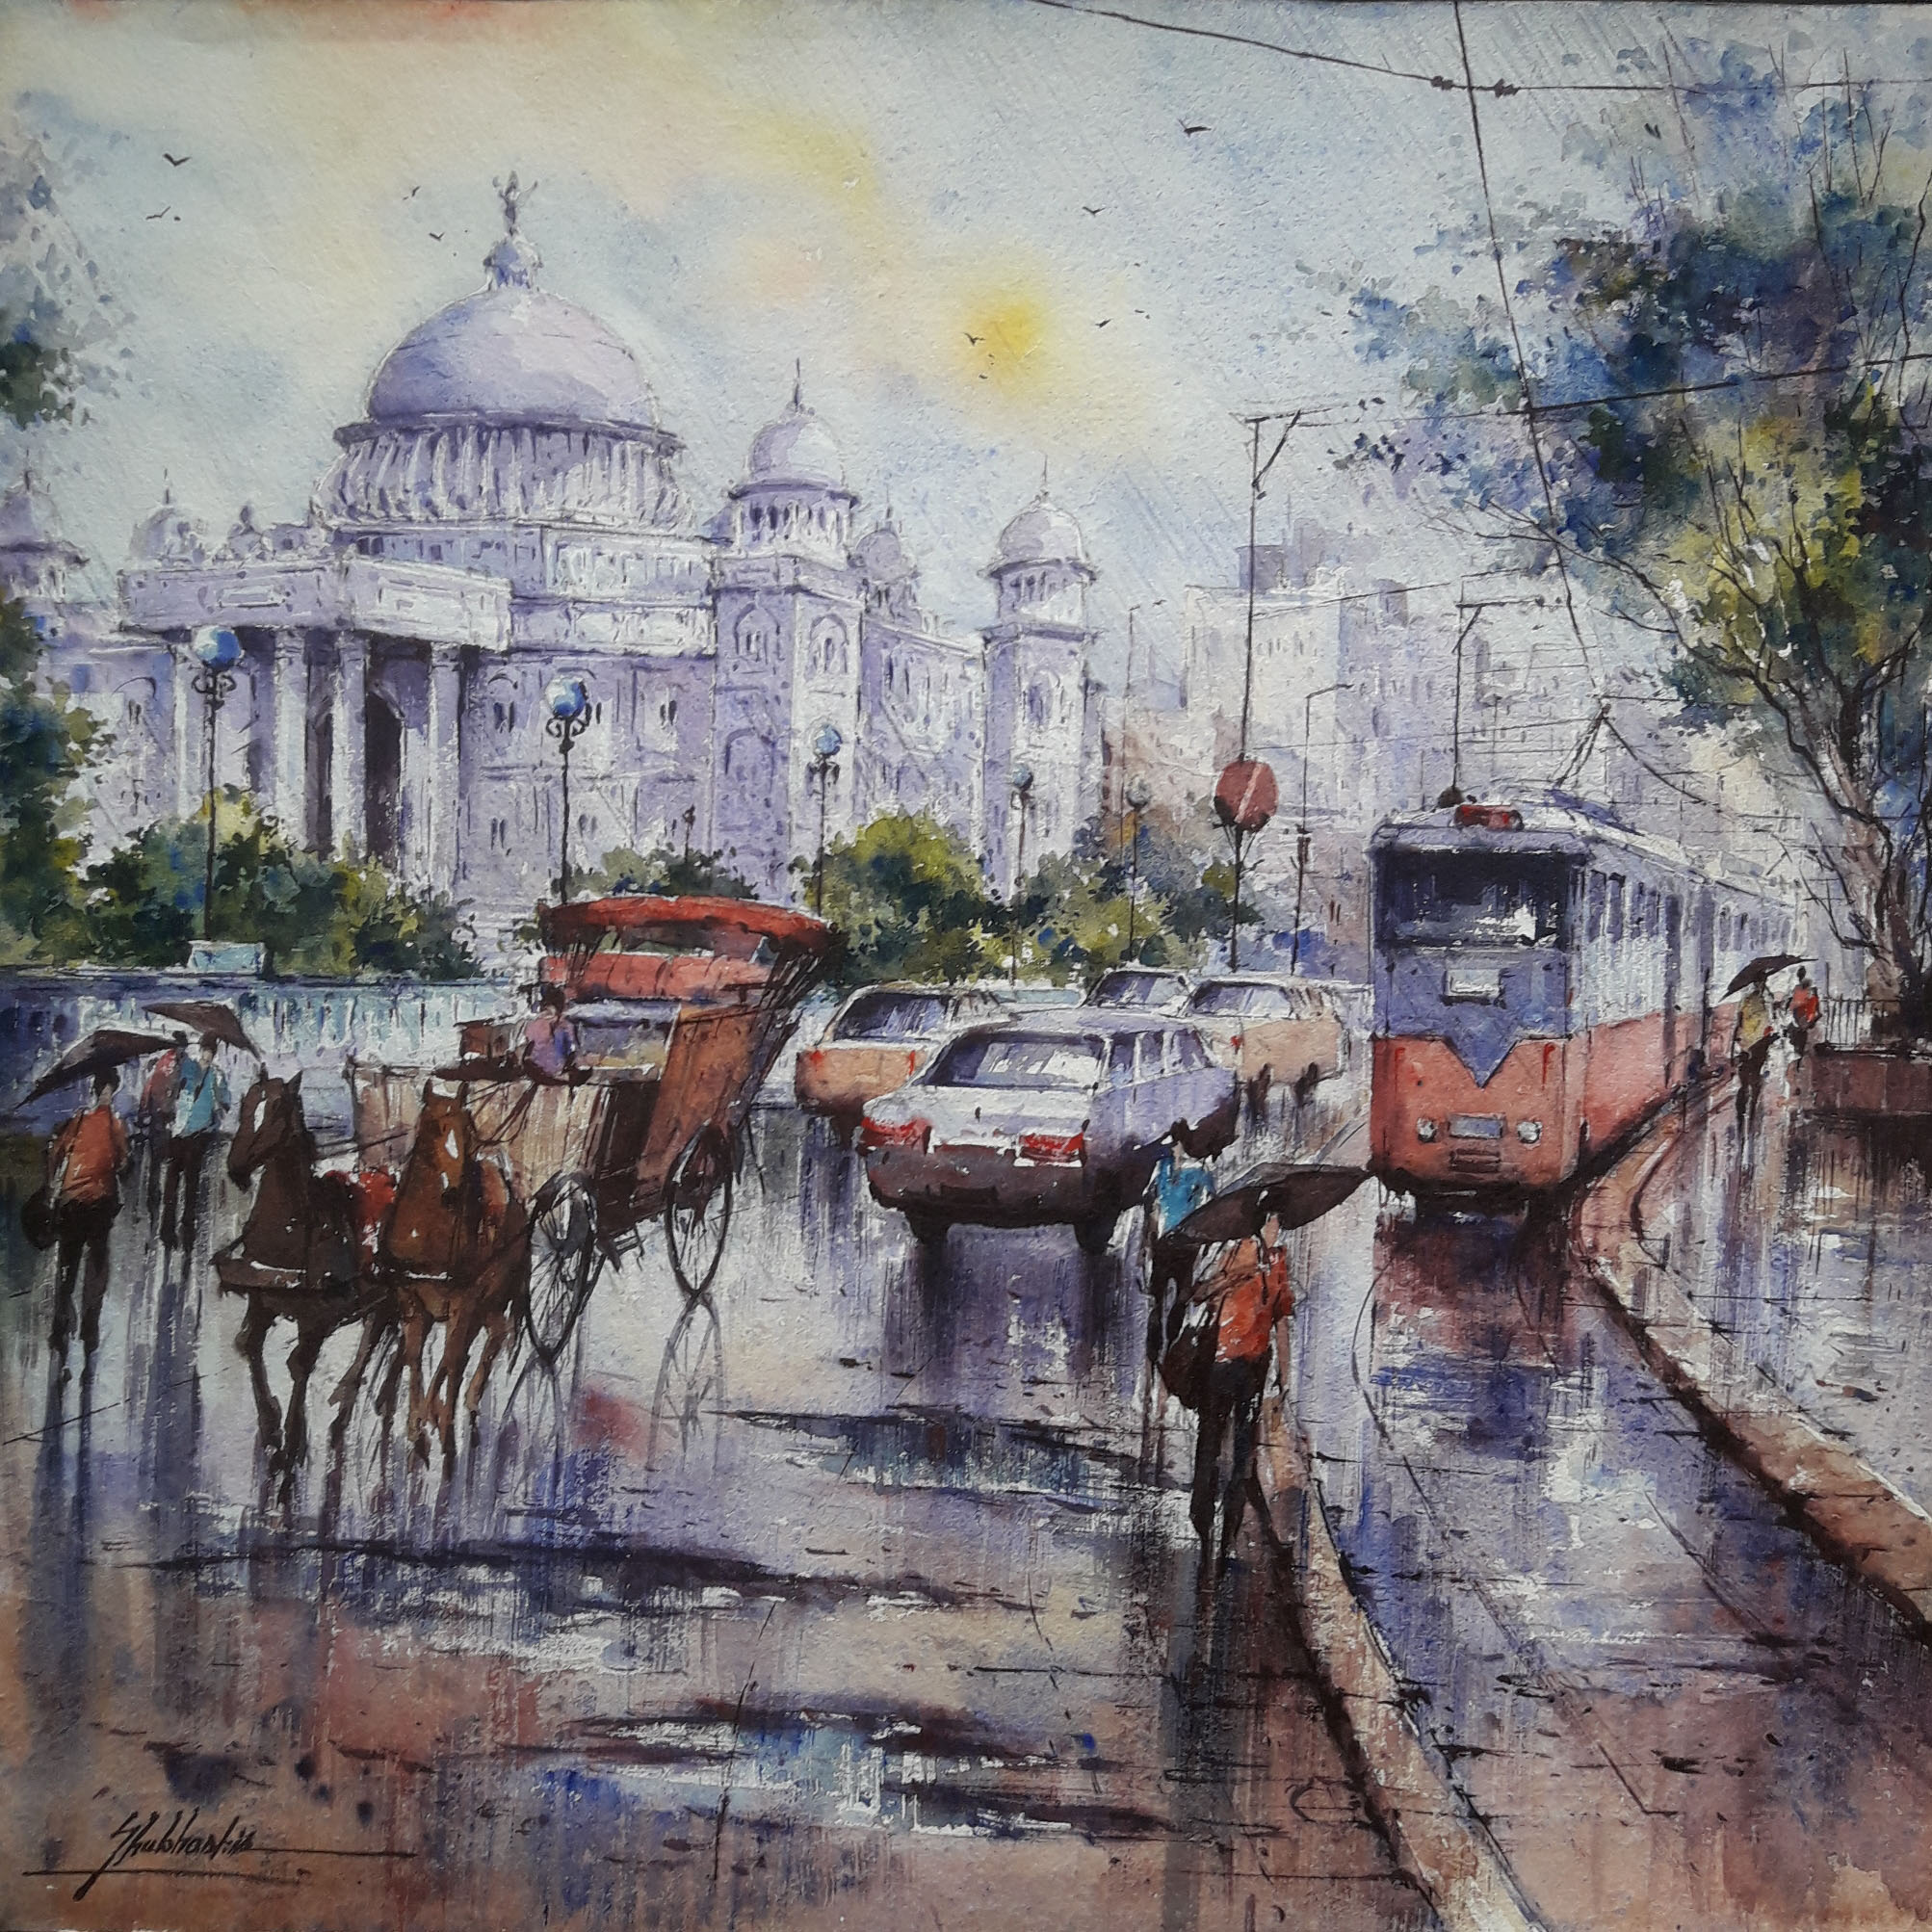 Victoria Memorial in Kolkata 16593